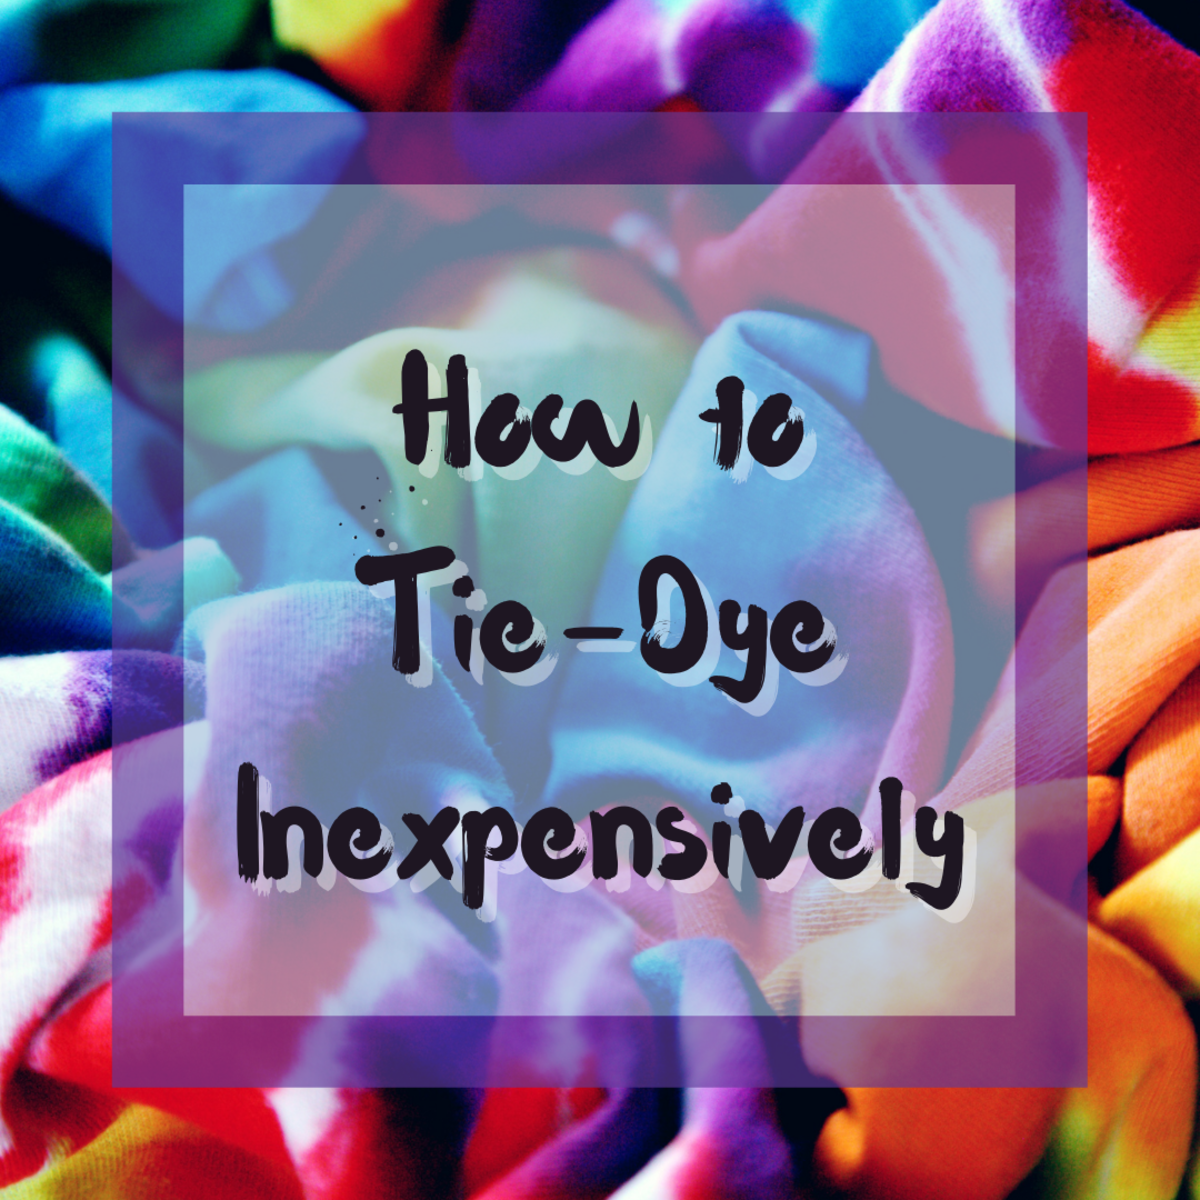 Learn everything you need to know about tie-dyeing inexpensively.